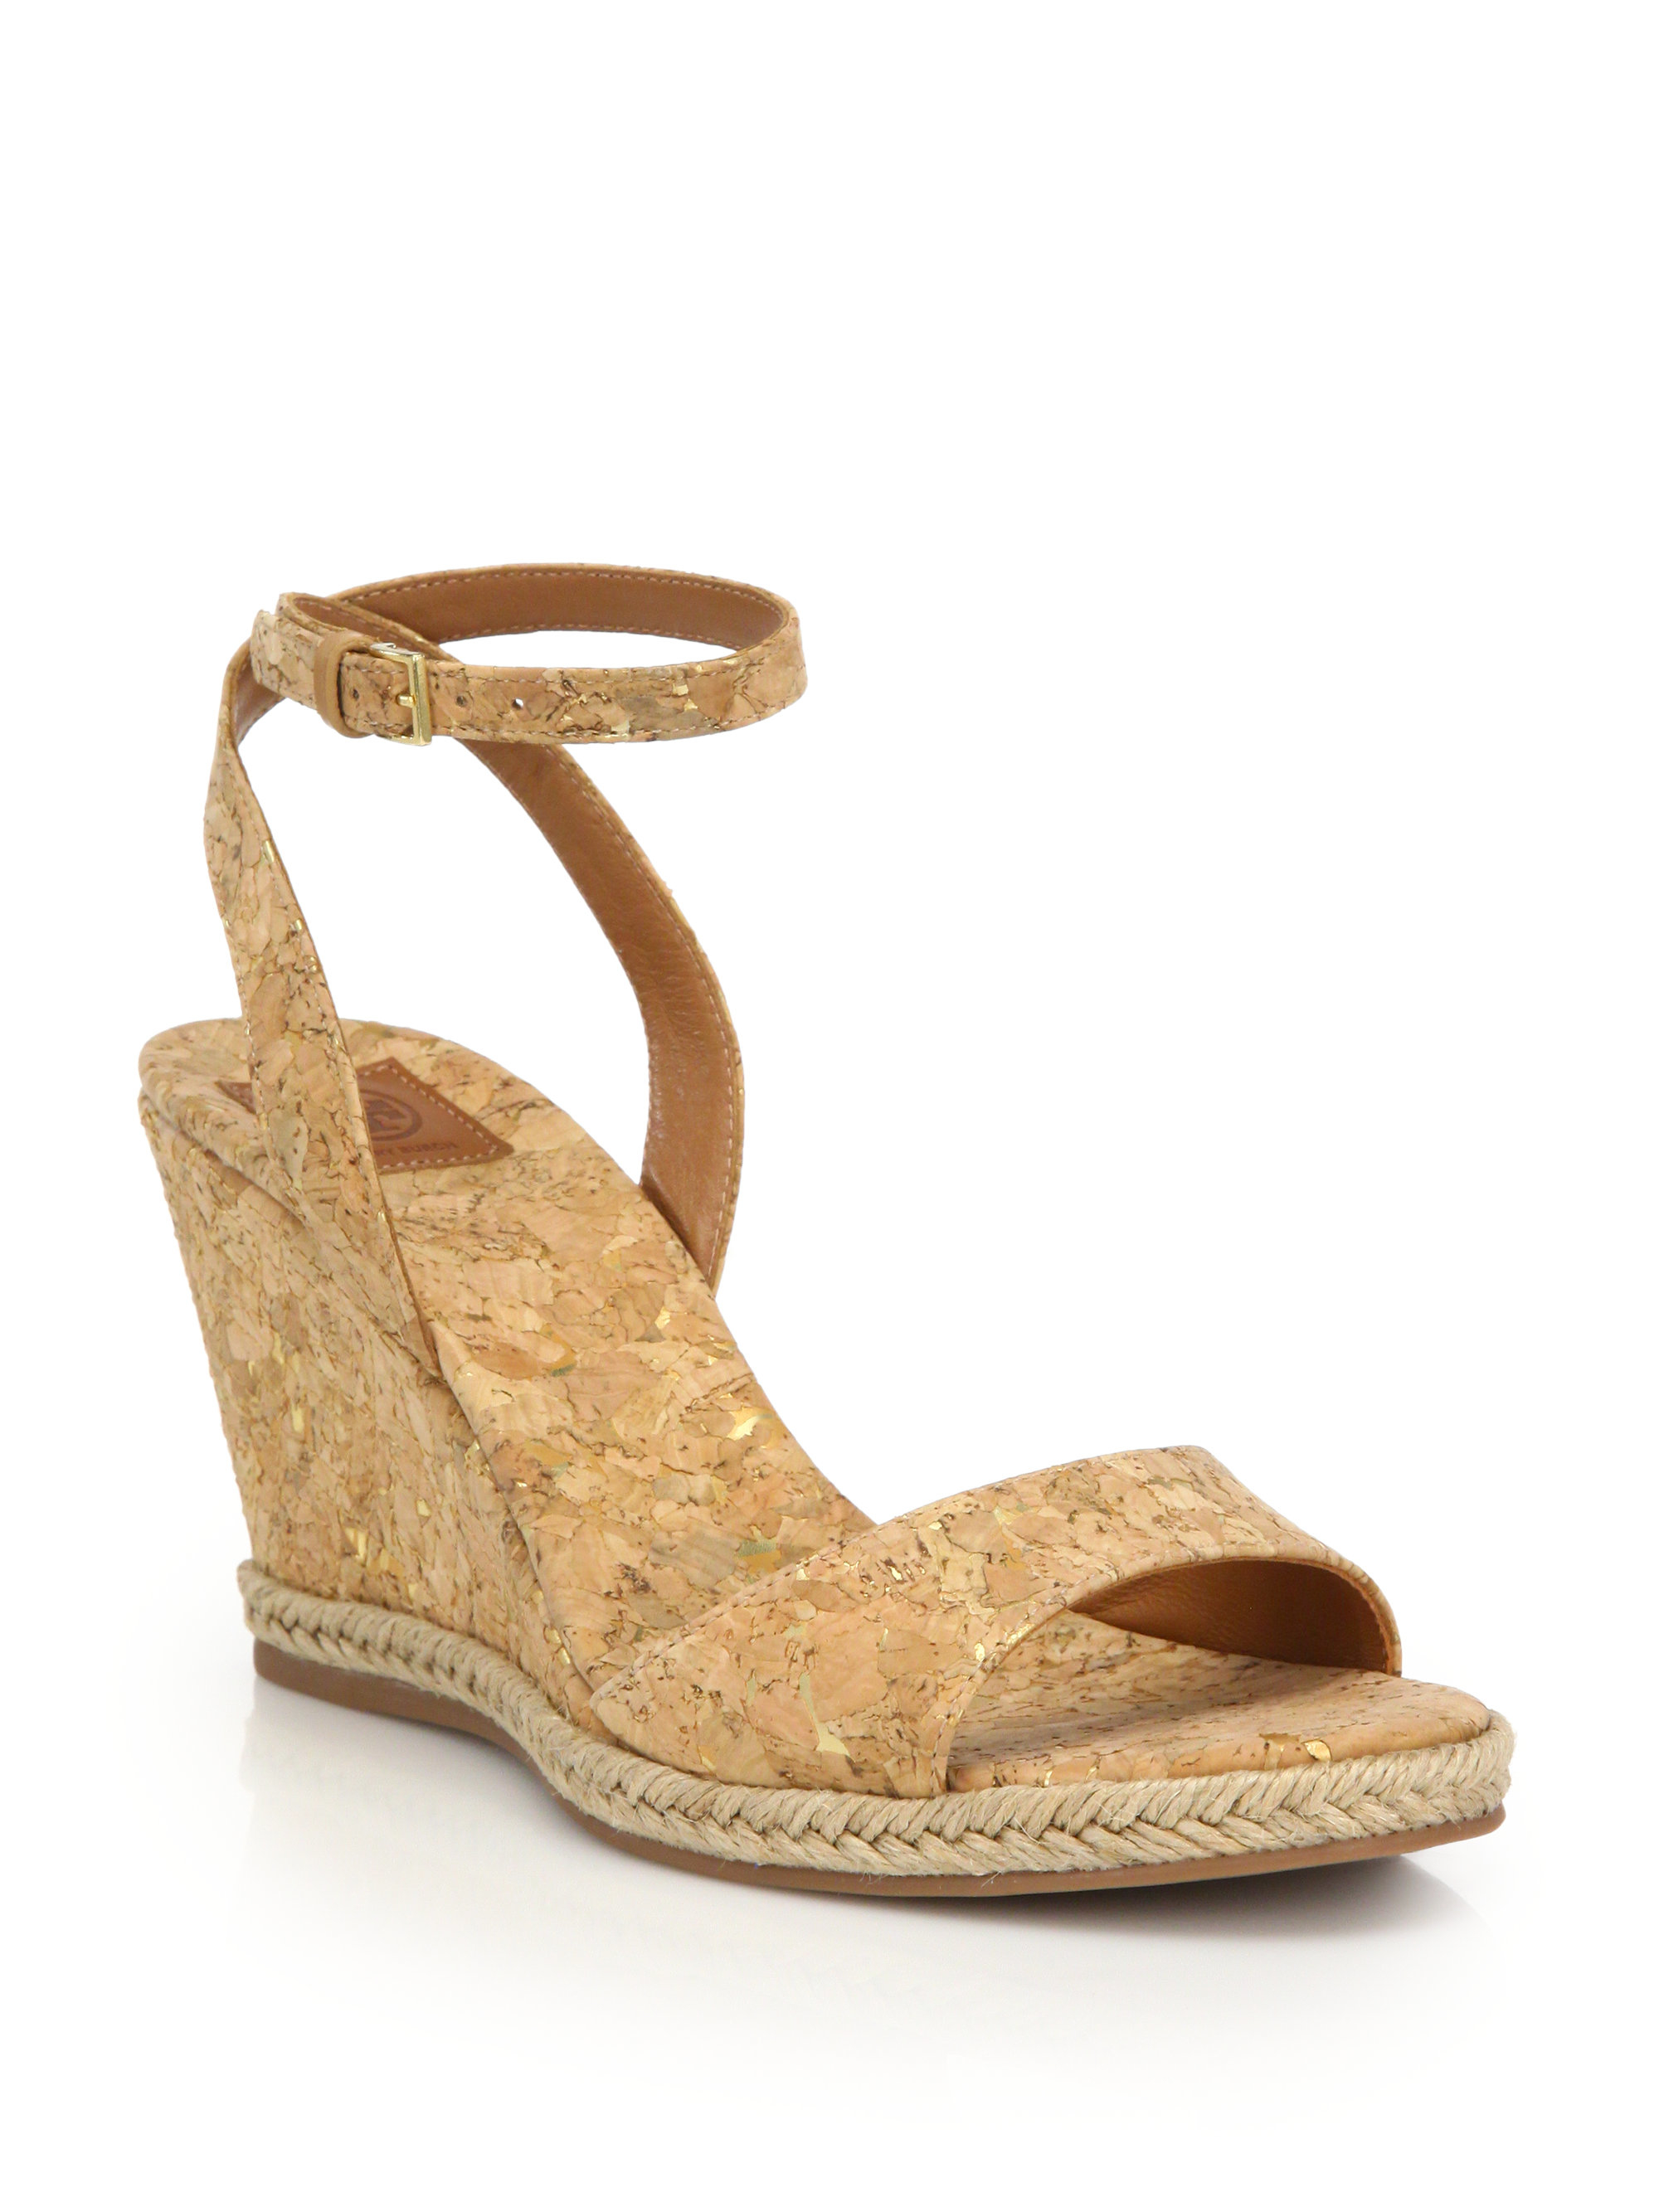 9534be779019 Lyst - Tory Burch Marion Cork Wedge Sandals in Natural